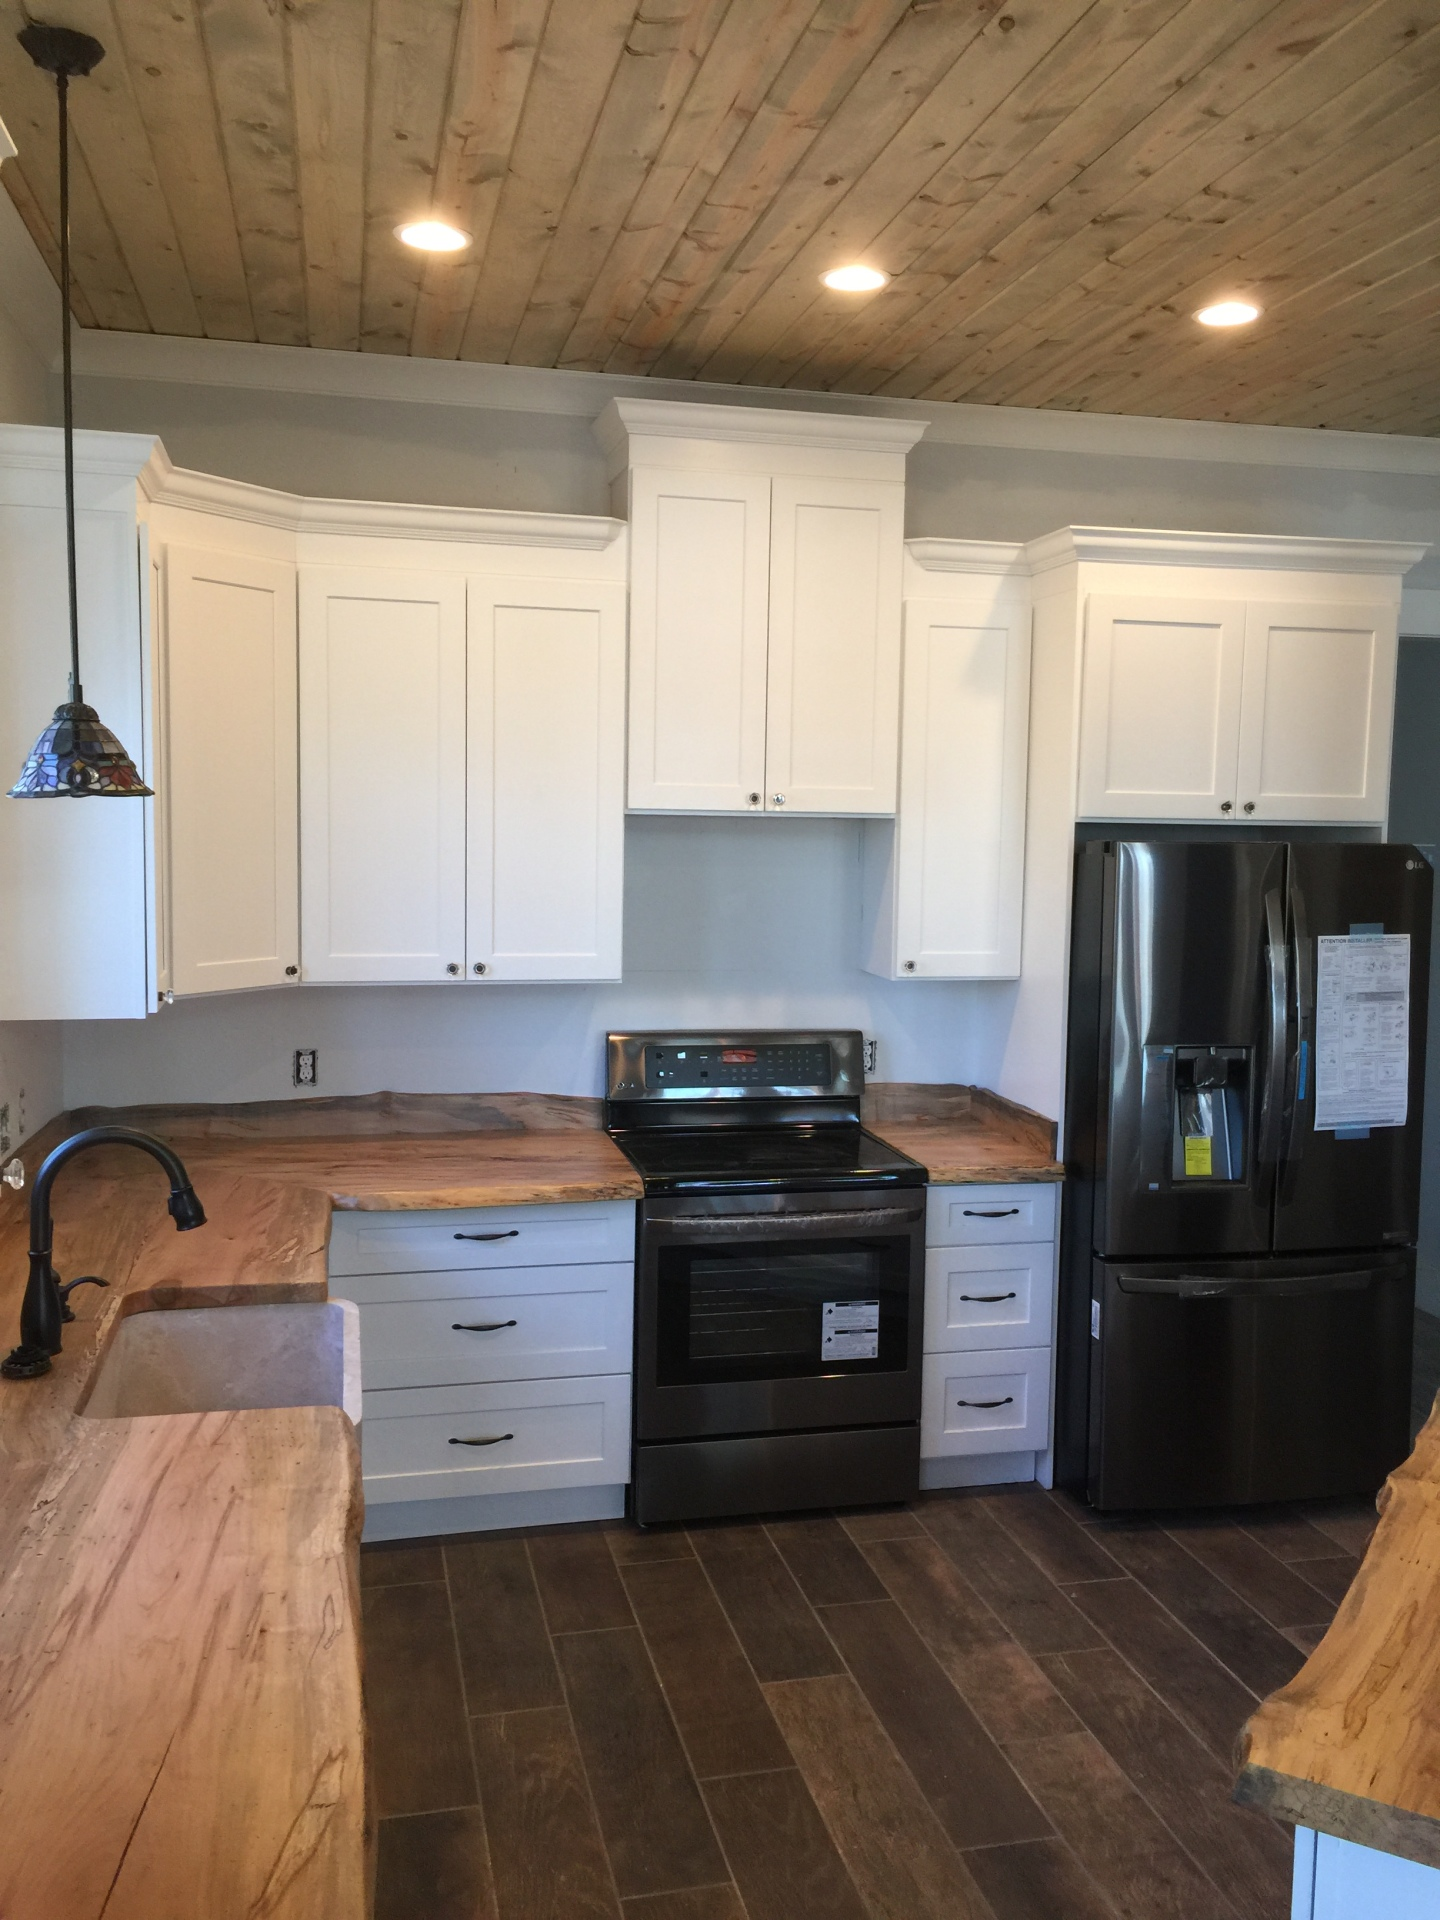 white, cabinets, kitchen, wood grain, countertop